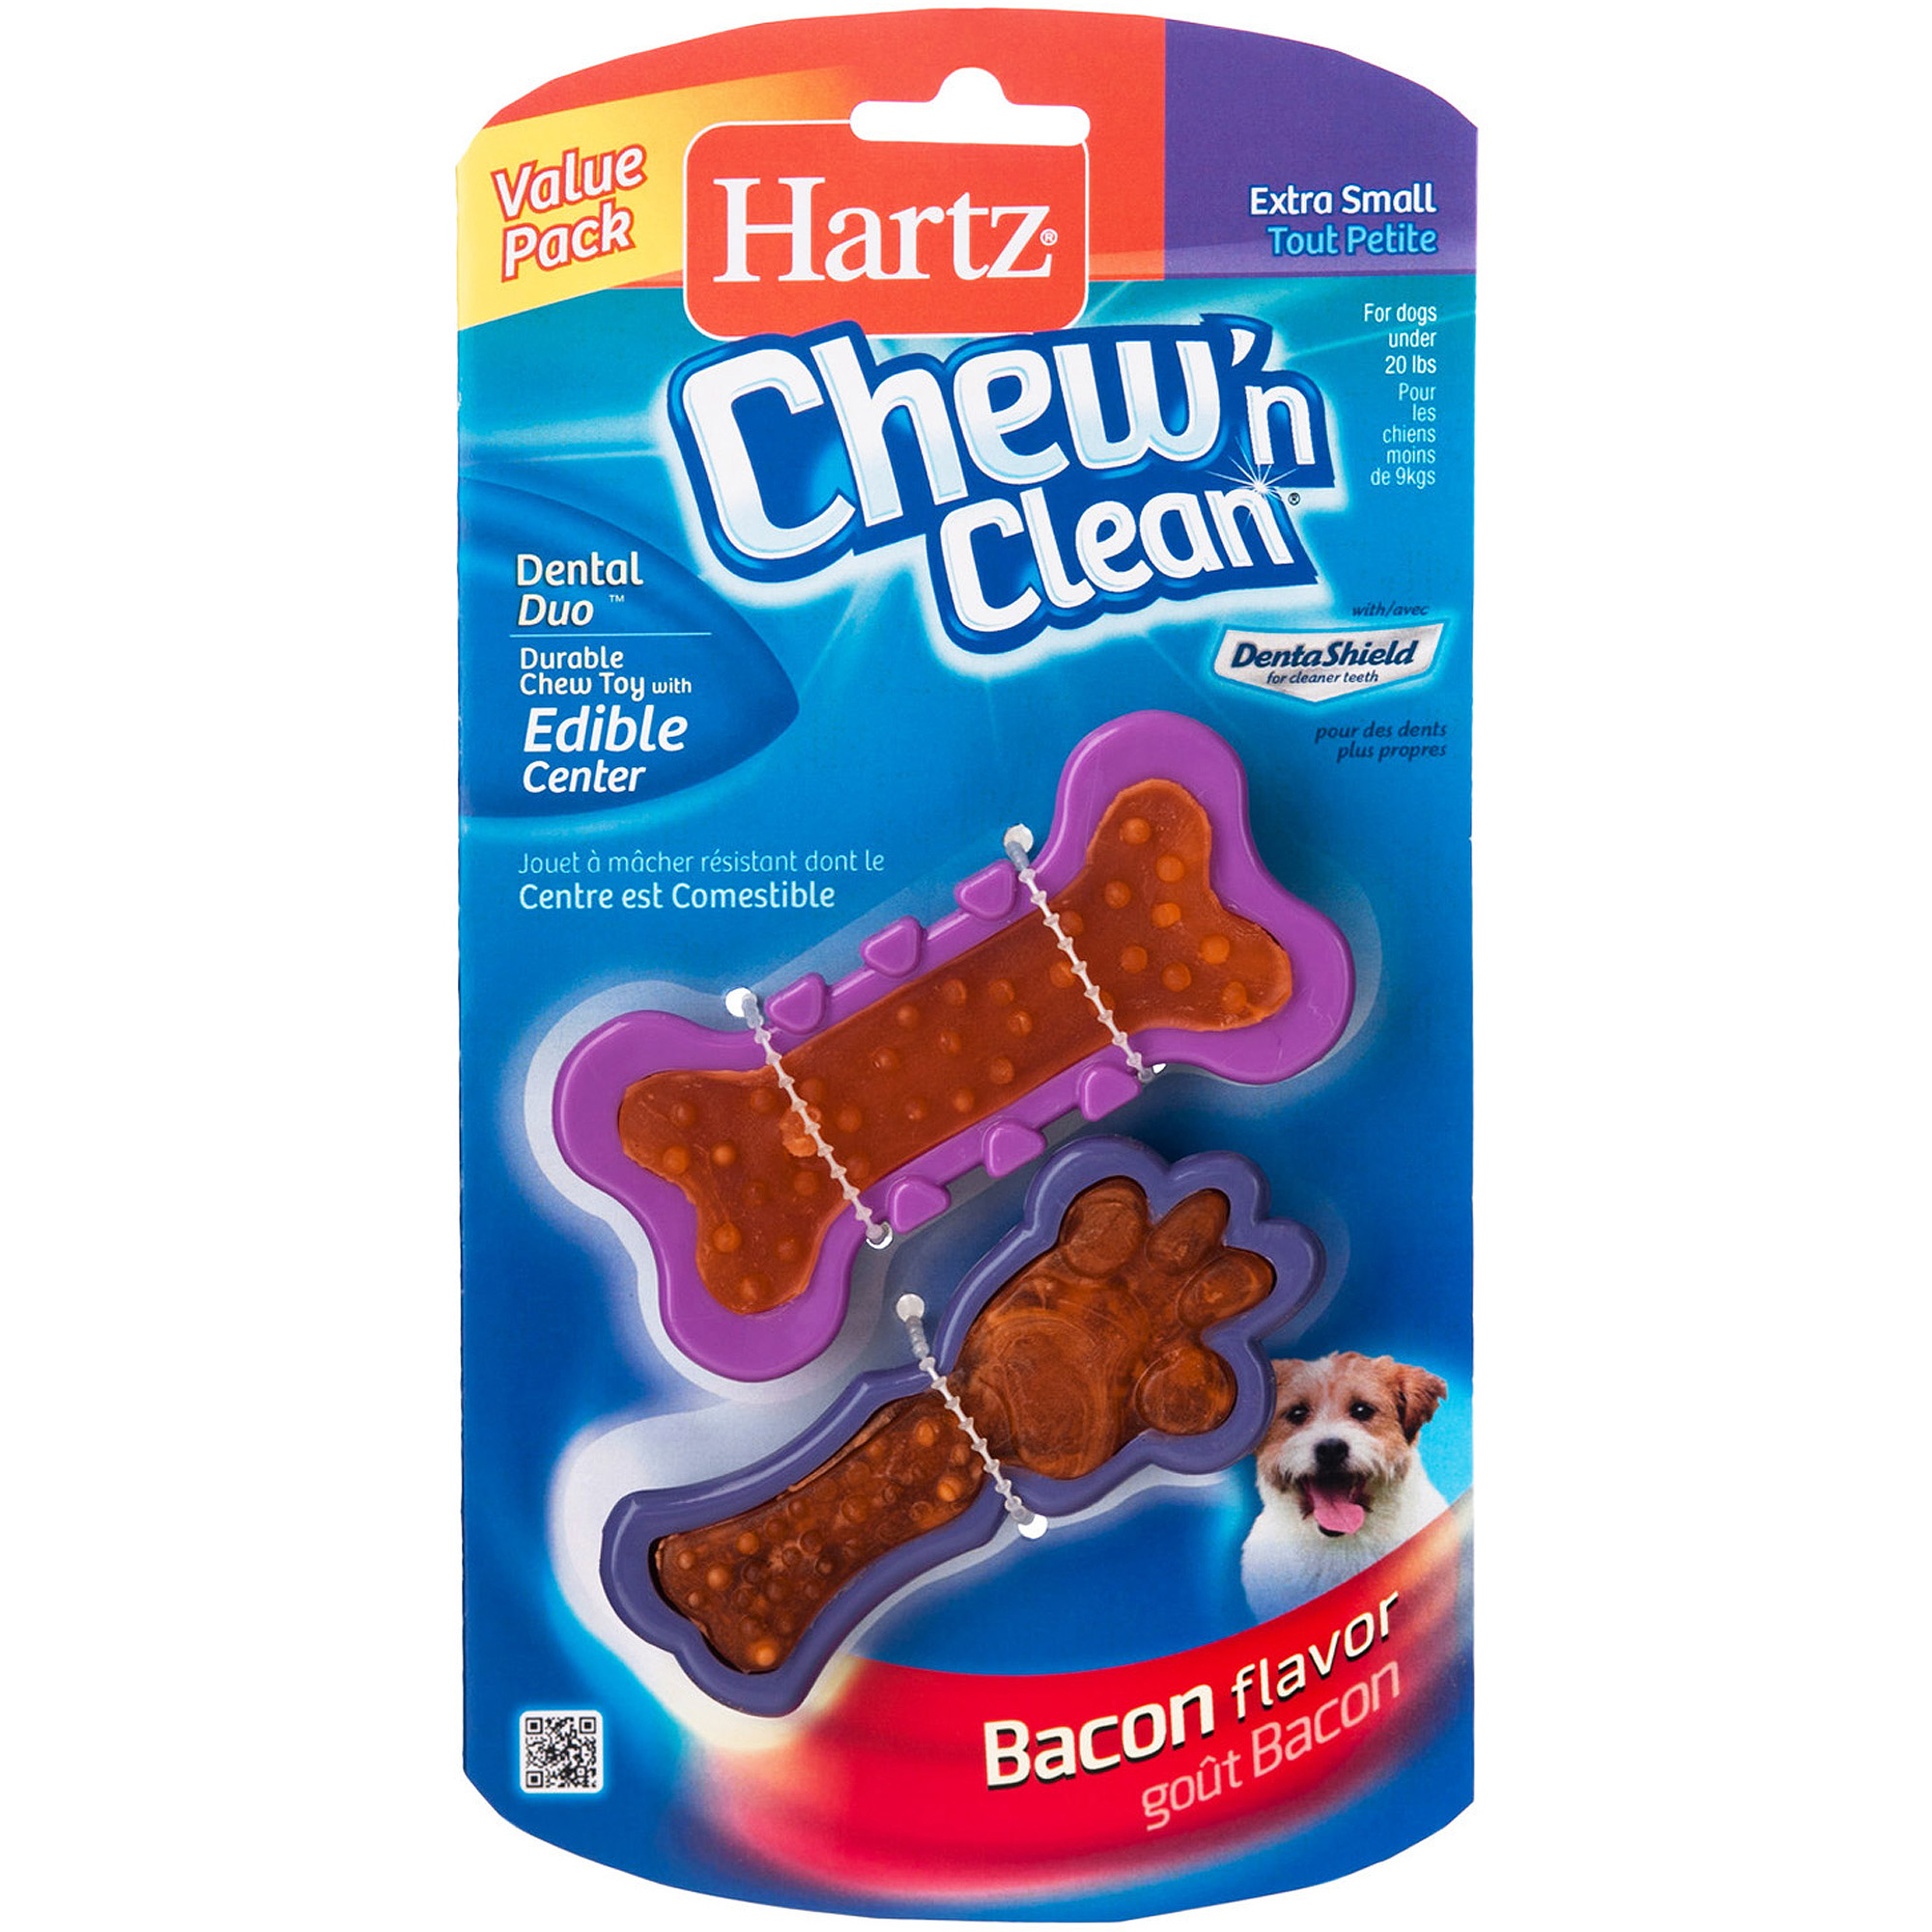 Hartz Detnal Duo Bone-Shaped Toy and Treat Combination for Small Dogs, 2-Pack